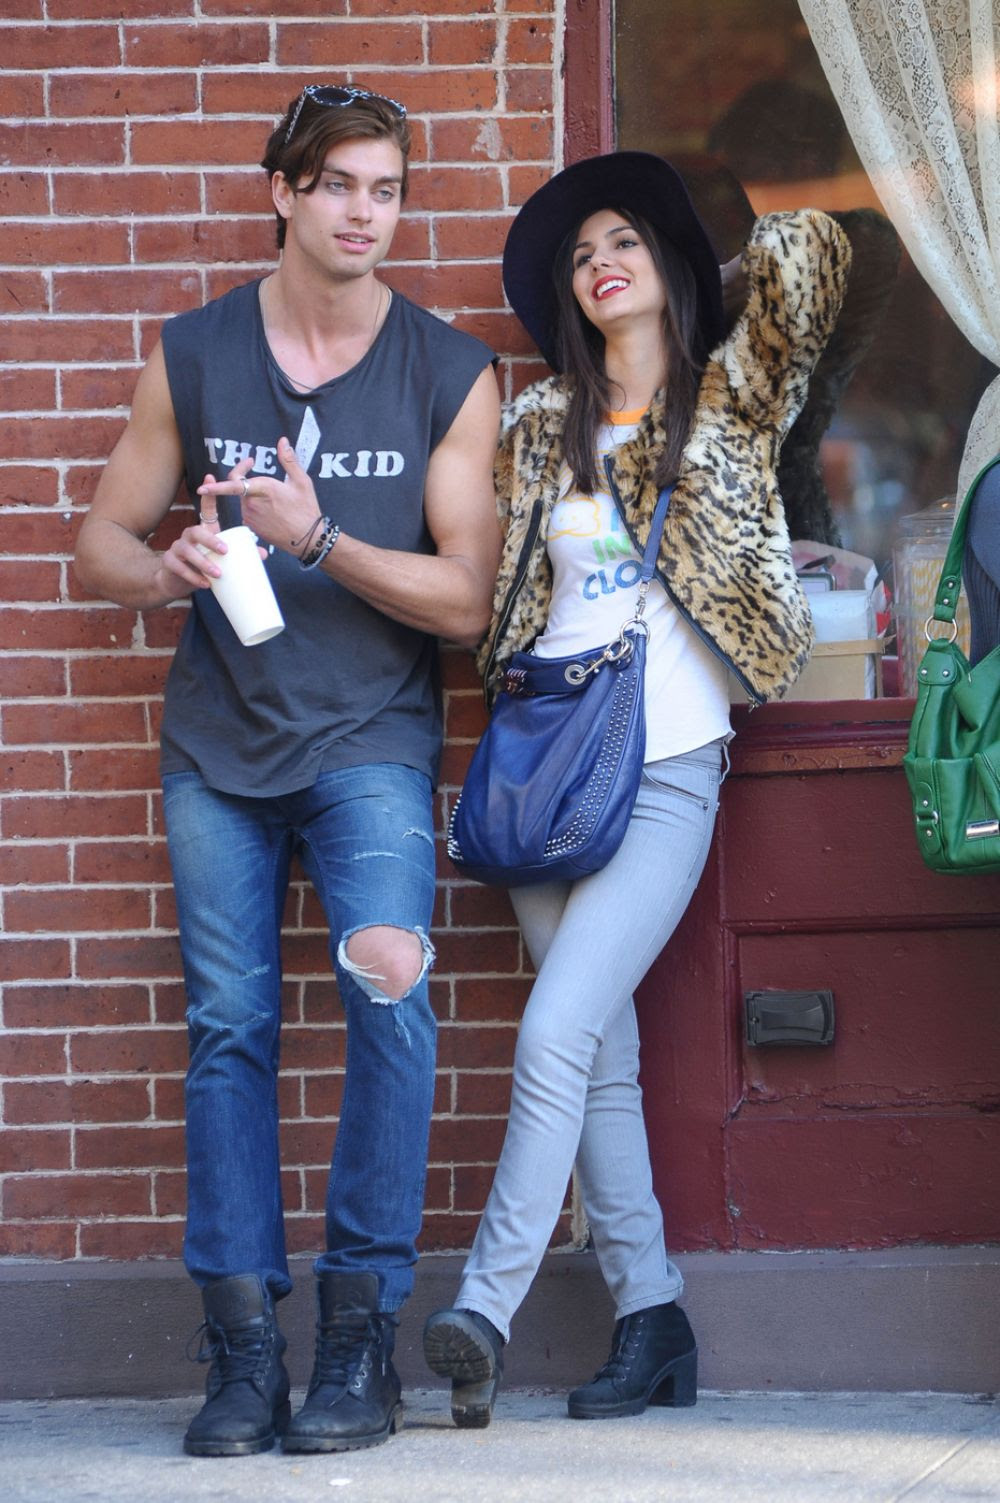 http://www.celebzz.com/wp-content/uploads/2013/10/victoria-justice-on-the-set-of-naomi-ely-s-no-kiss-list-in-ny_6.jpg